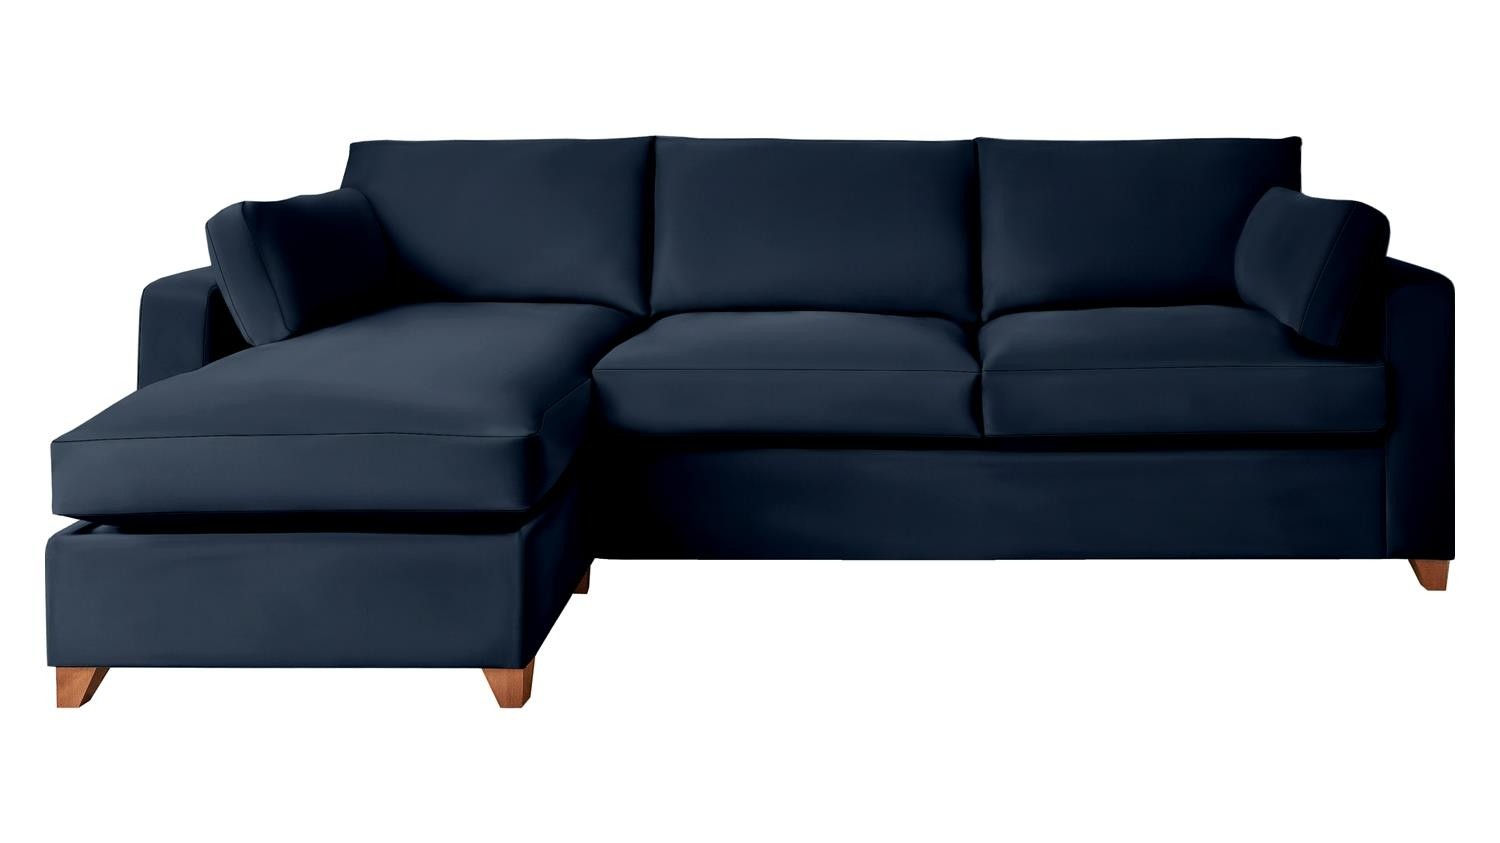 The Ashwell 4 Seater Left Chaise Storage Sofa Bed